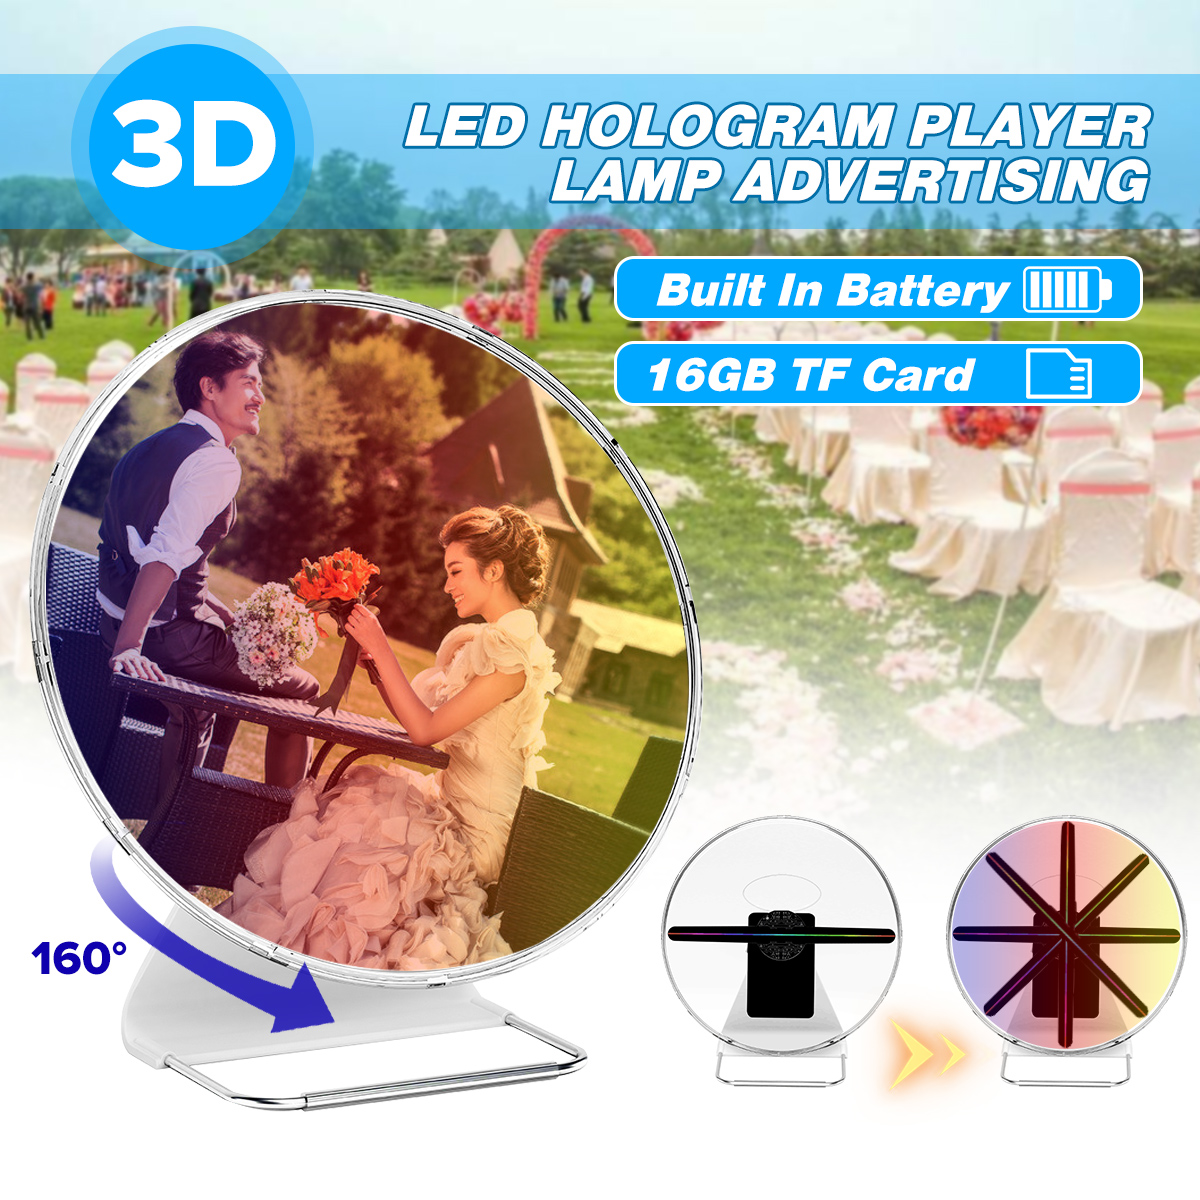 Portable 30CM 3D Holographic Projector With Battery Hologram Player LED Display Fan Advertising Light APP Control image